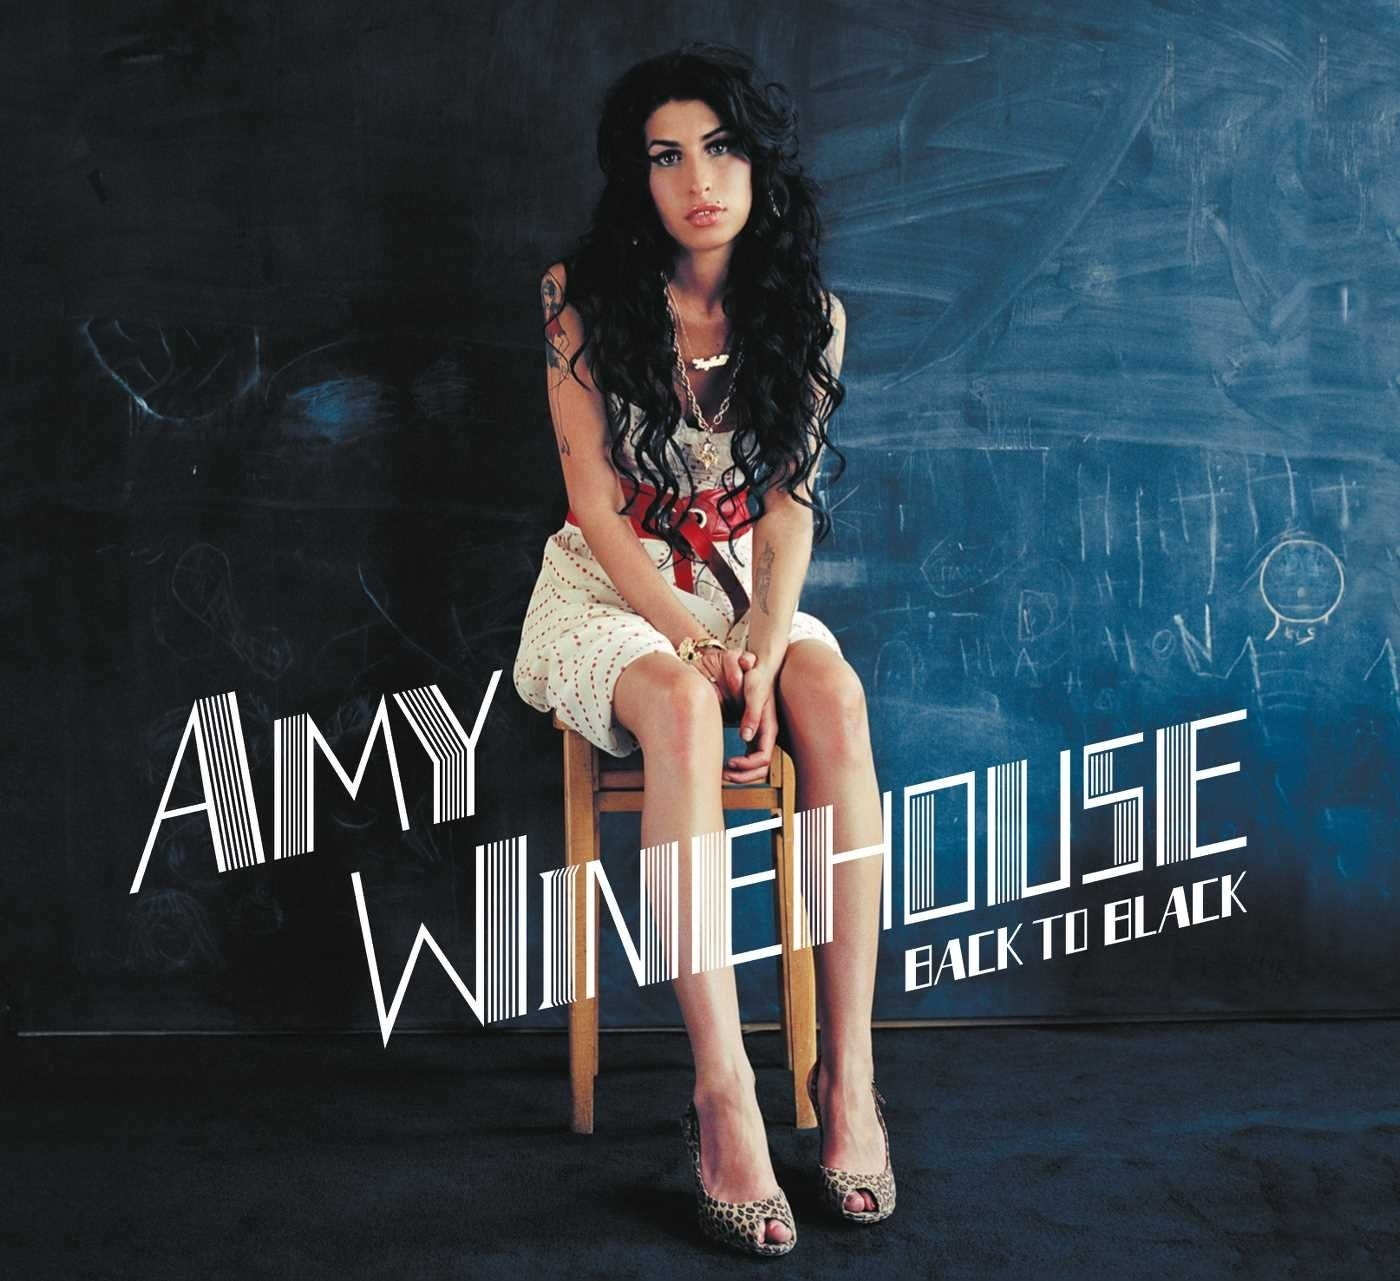 Amy Winehouse sitting on a stool in front of a chalkboard.